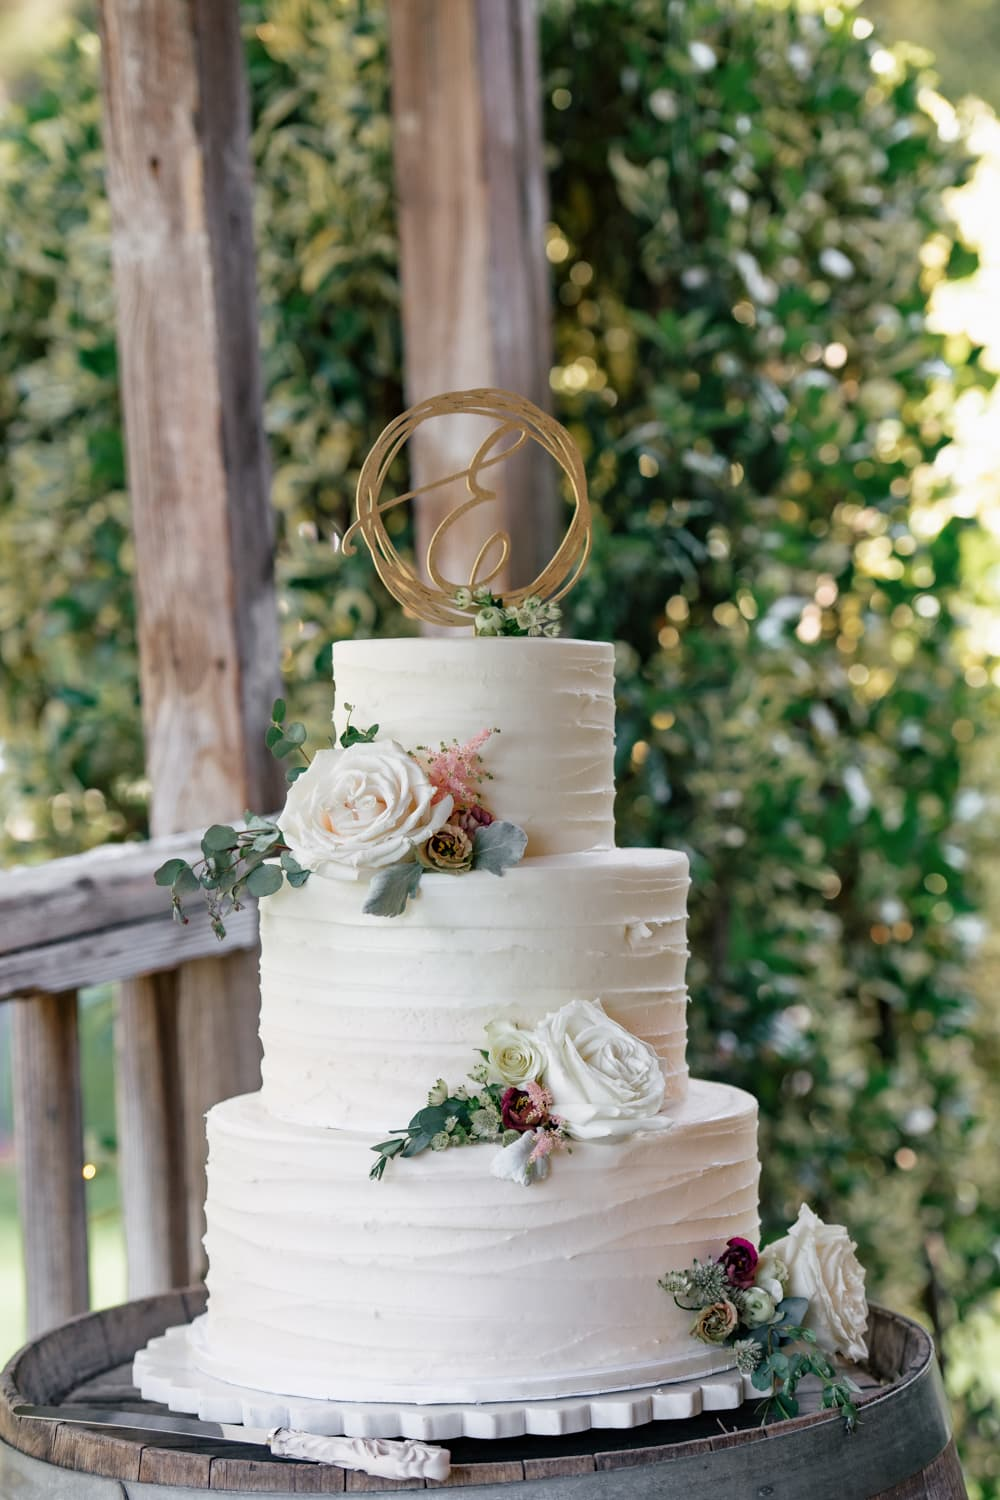 Wedding cake at The Stone House in Temecula, CA